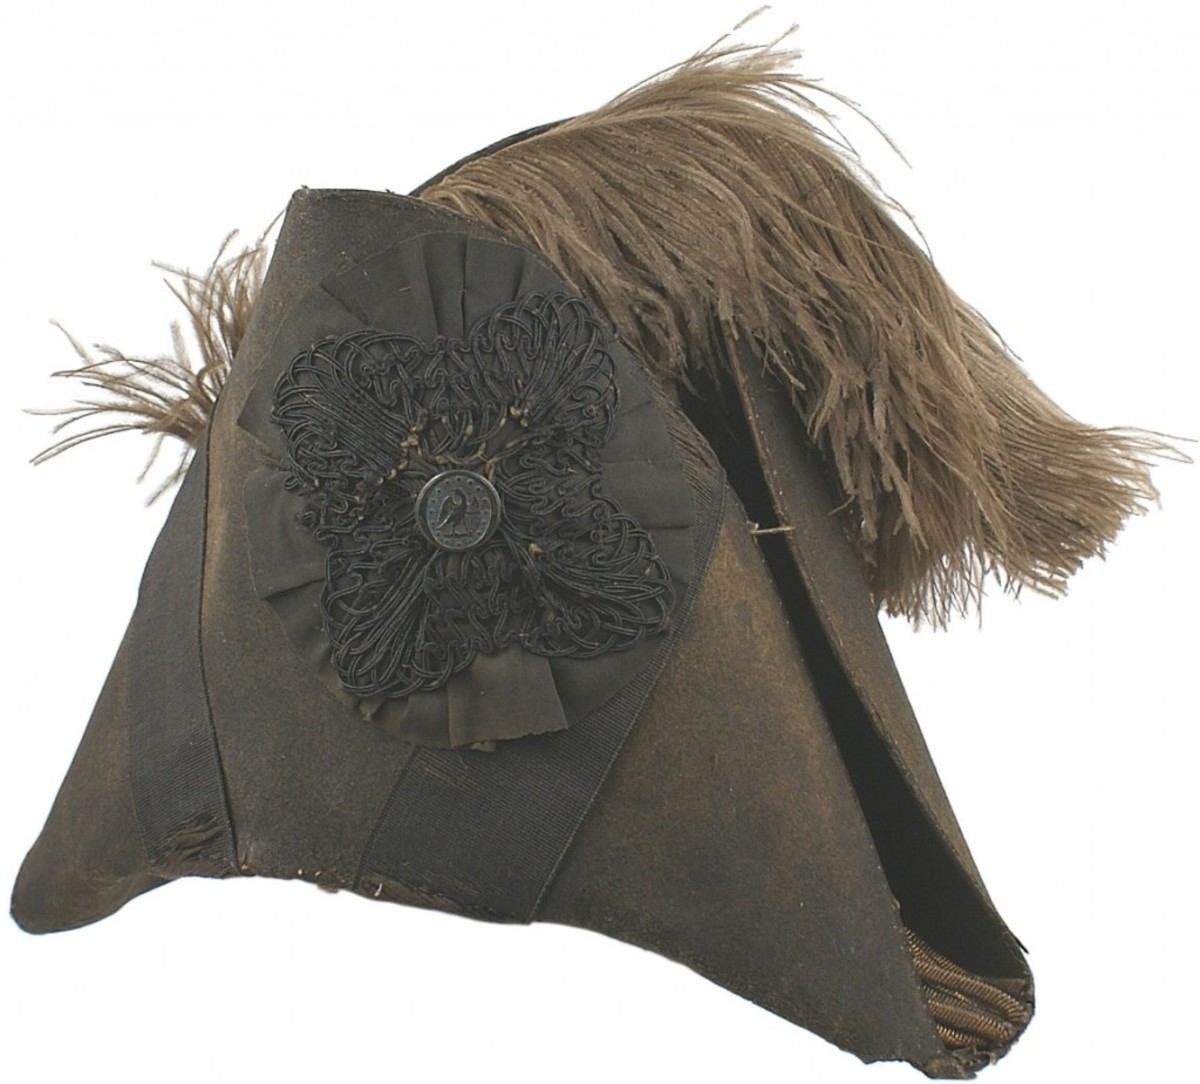 American War of 1812 chapeau de bras, triangle form with folded brims (Opening bid: $1,250).